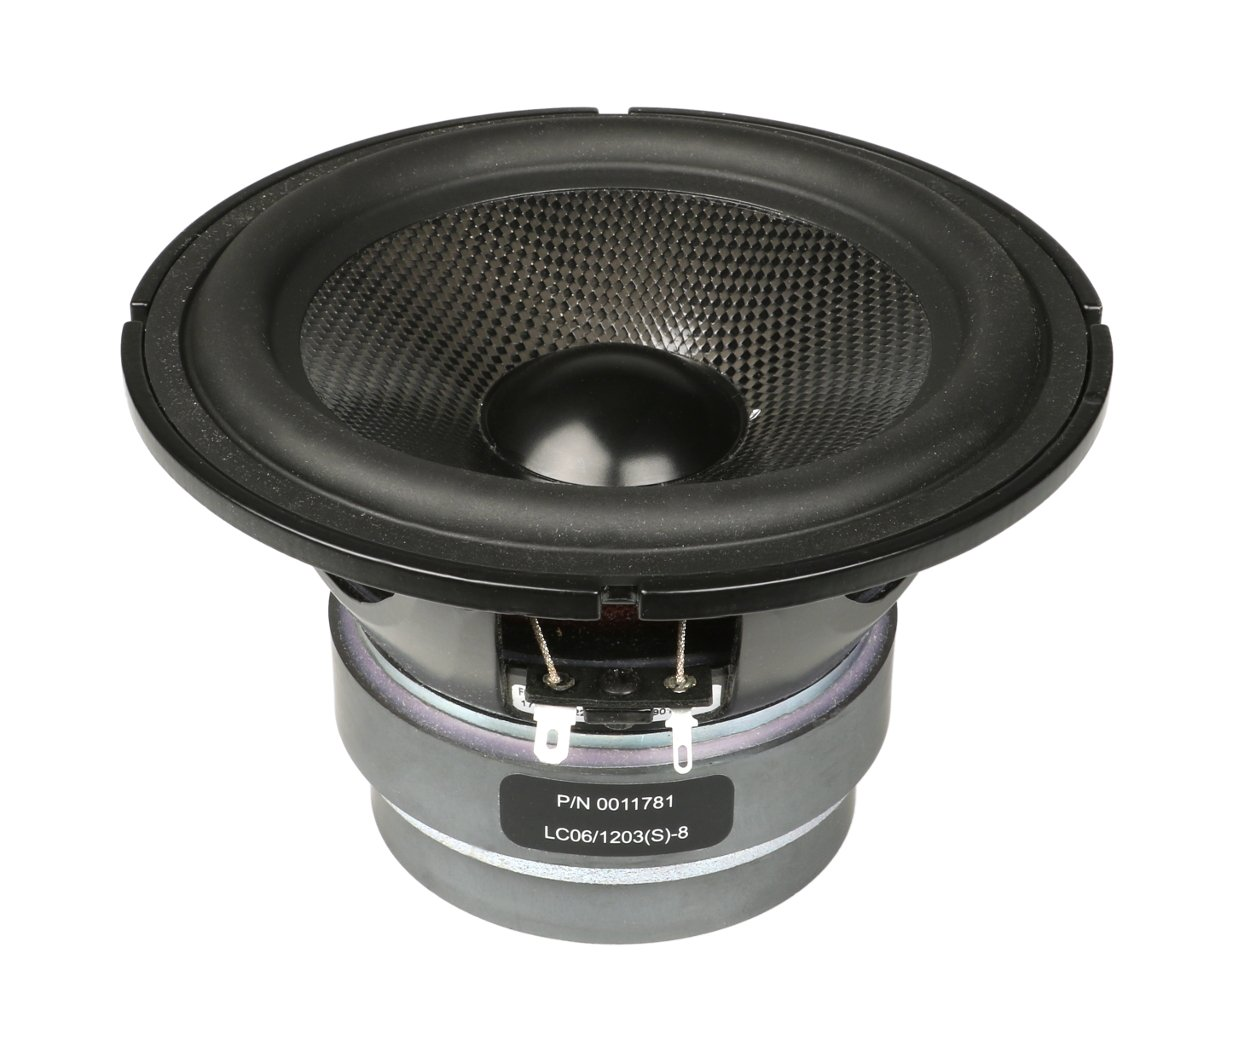 Woofer for LC06/1203(S)-8 and JF60Z